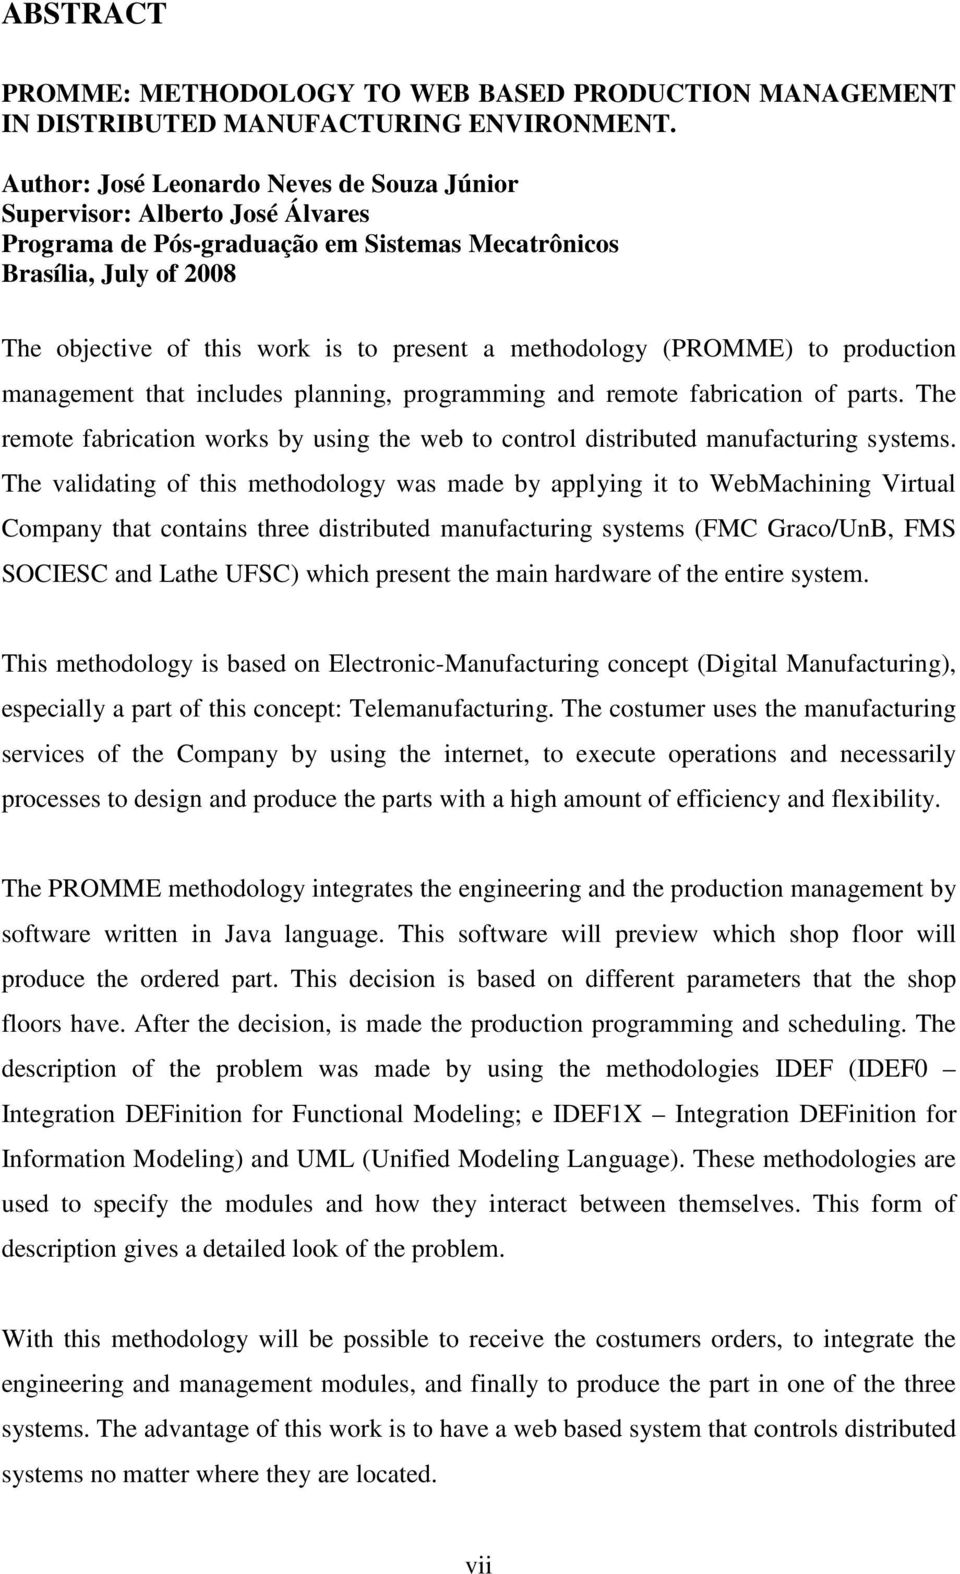 methodology (PROMME) to production management that includes planning, programming and remote fabrication of parts.